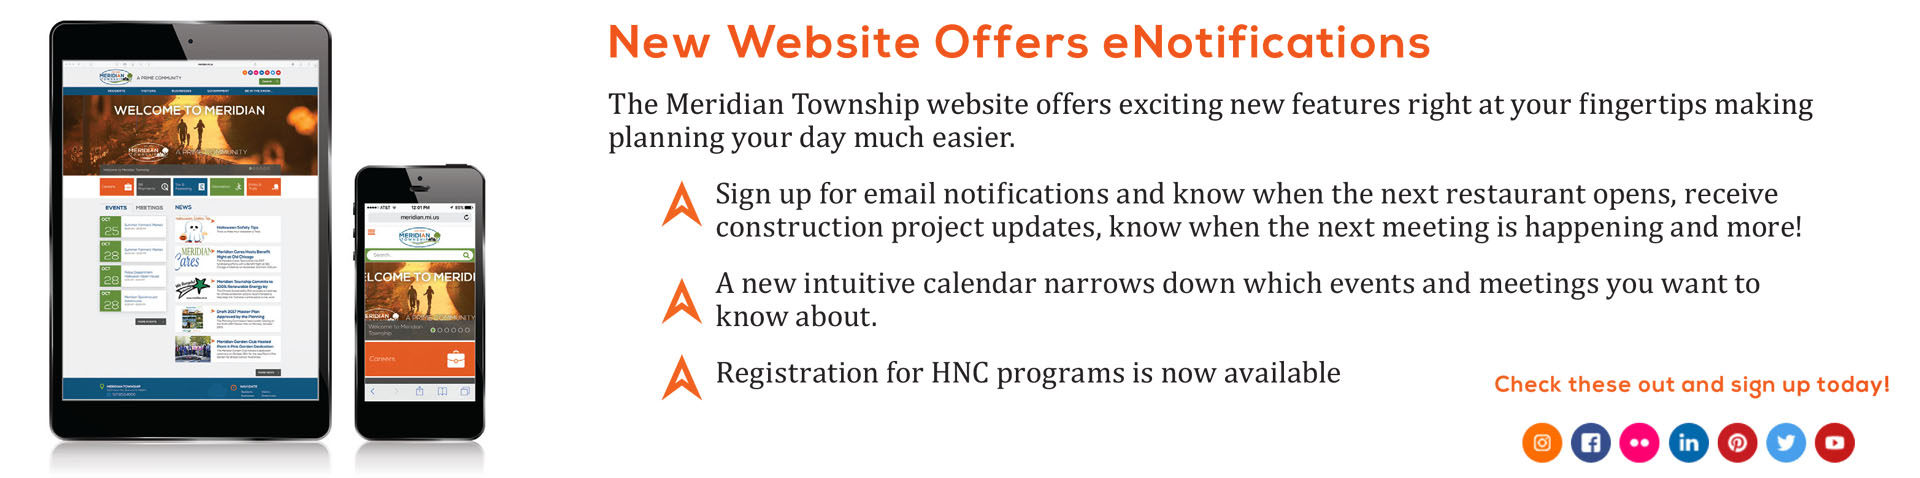 New website offers eNotifications. The Meridian Township website offers exciting new features right at your fingertips making planning your day much easier.